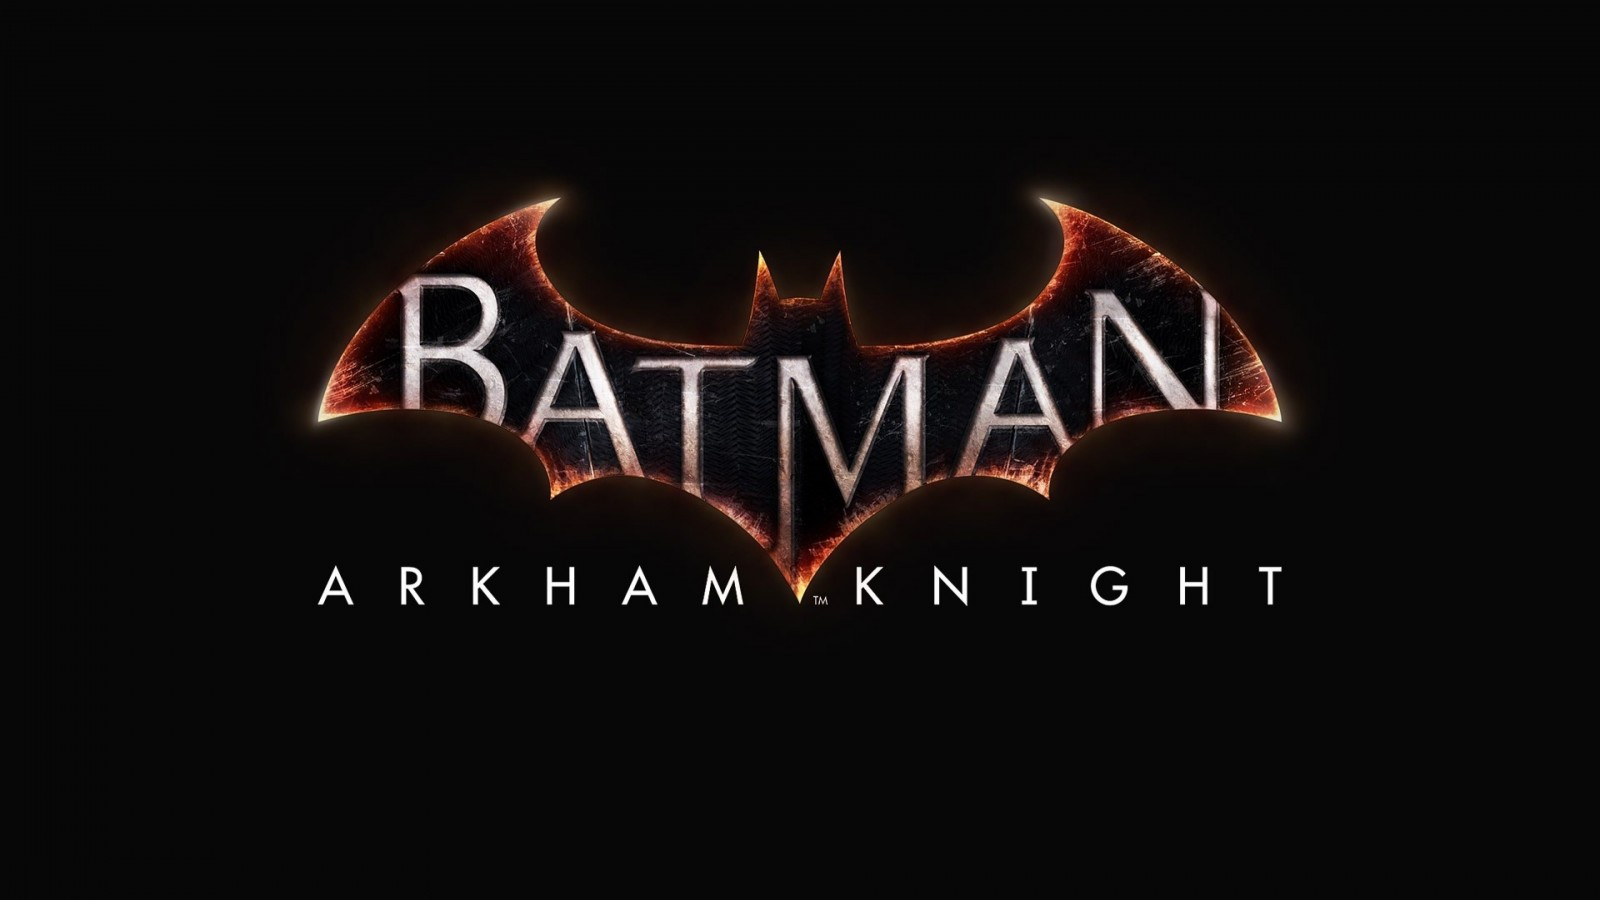 Batman: Arkham Knight Logo Wallpaper for Desktop 1600x900